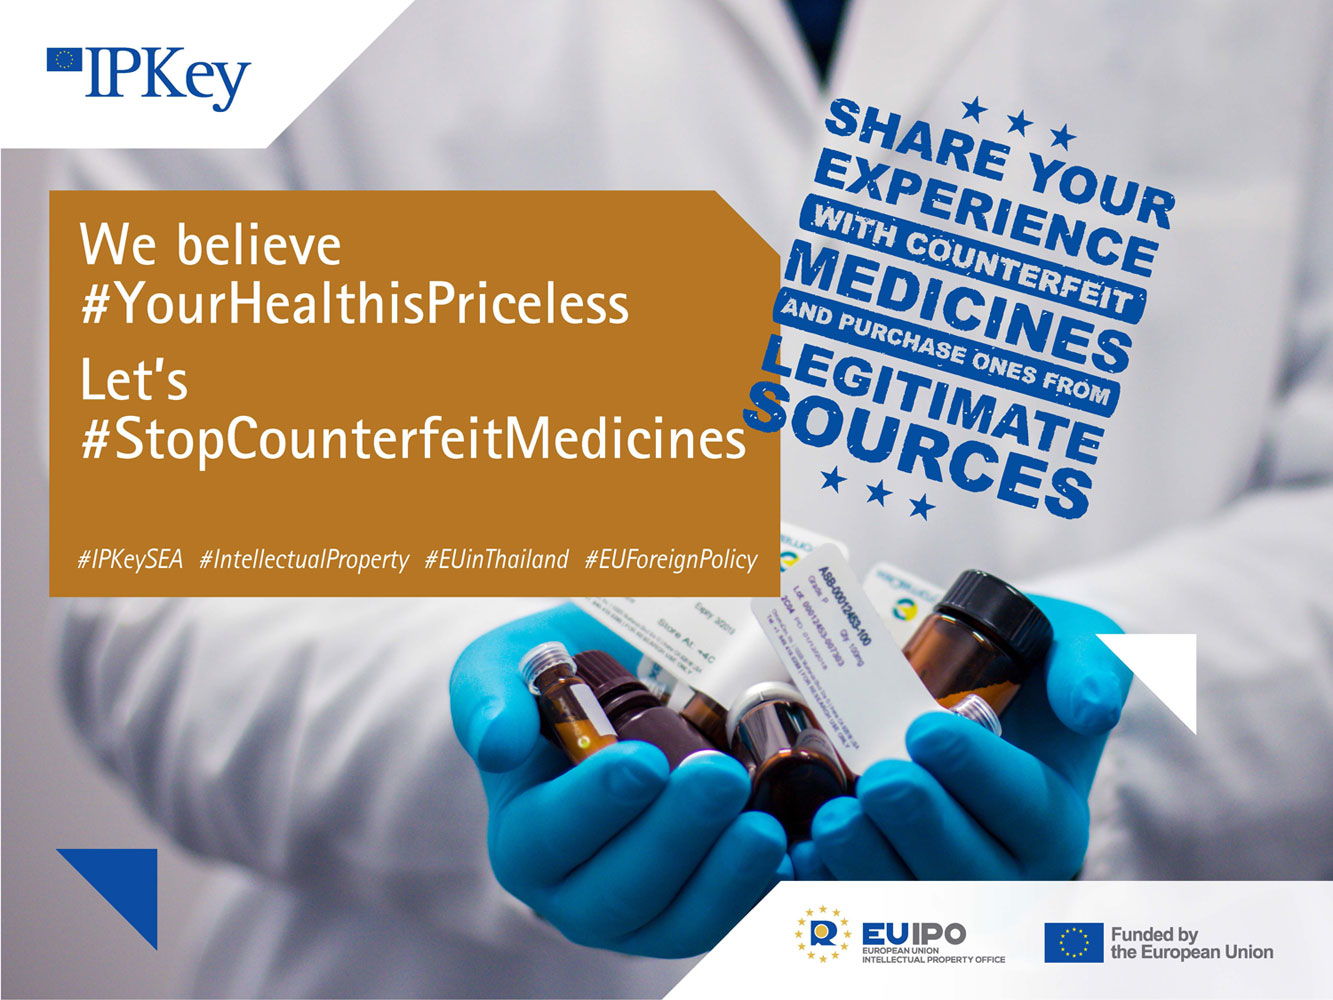 Social media can be a potent weapon against counterfeit medicines and help build awareness among consumers